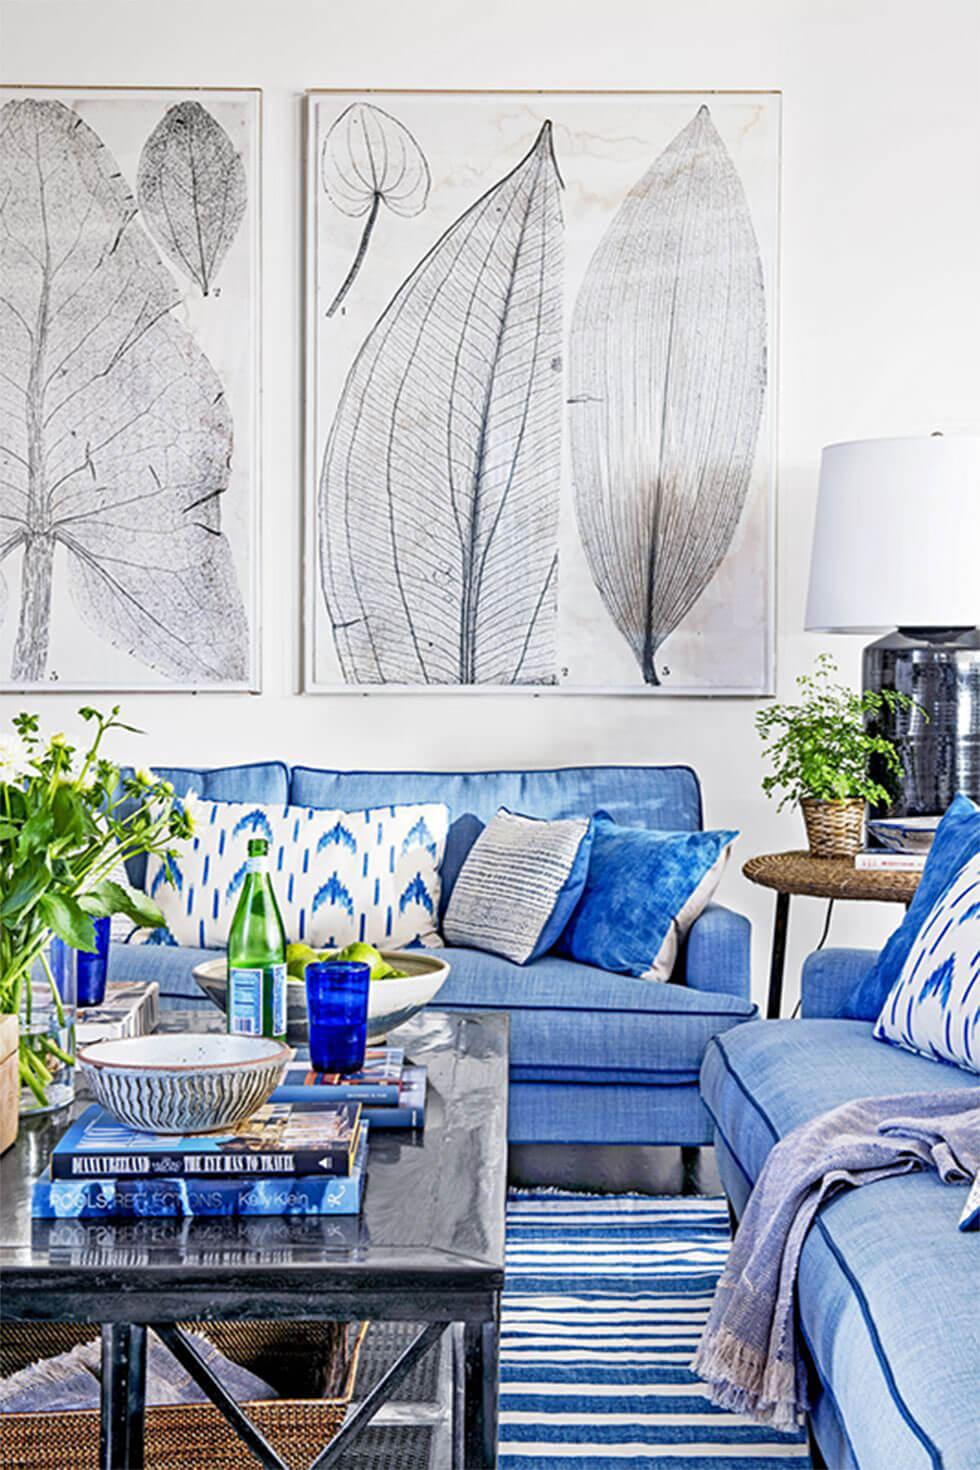 8 Cool Ideas For Blue Living Room Ideas From Tranquil To Vibrant Inspiration Furniture And Choice